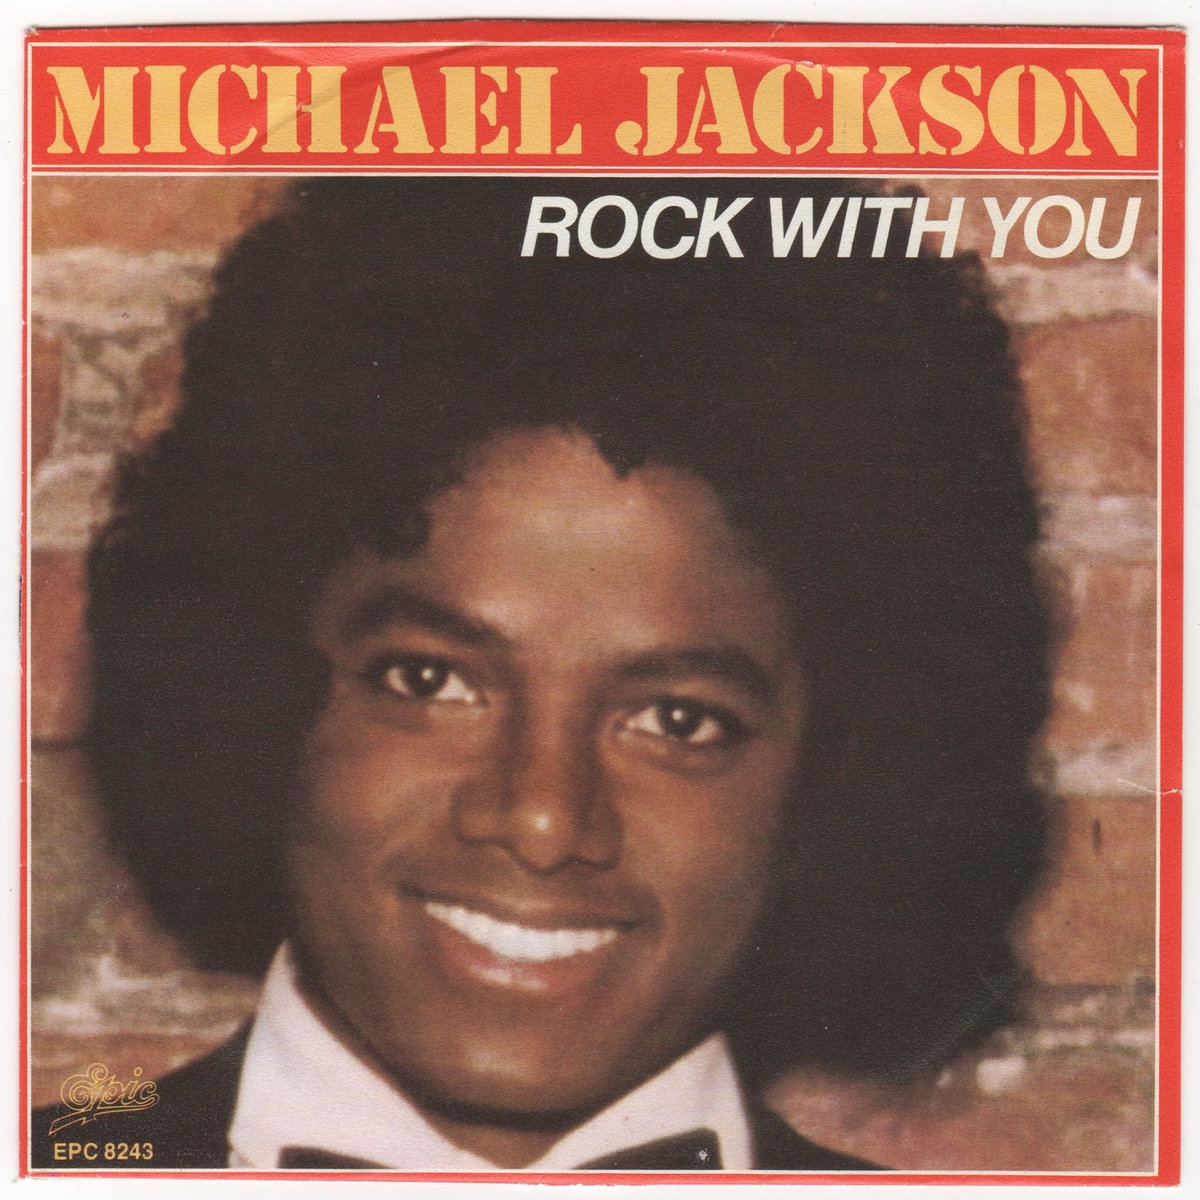 Michael Jackson Rock With You (Single Version)